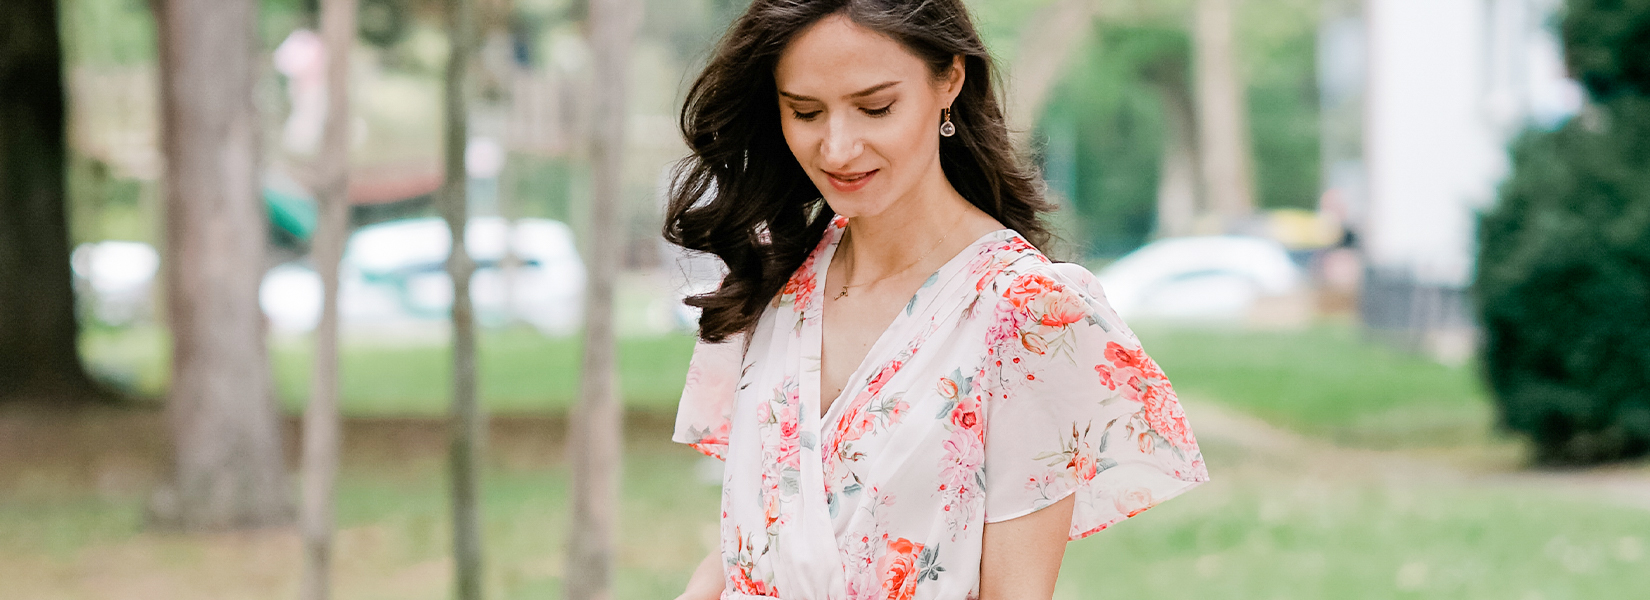 City In Bloom: The Perfect Floral Dress For Spring And Summer 2021